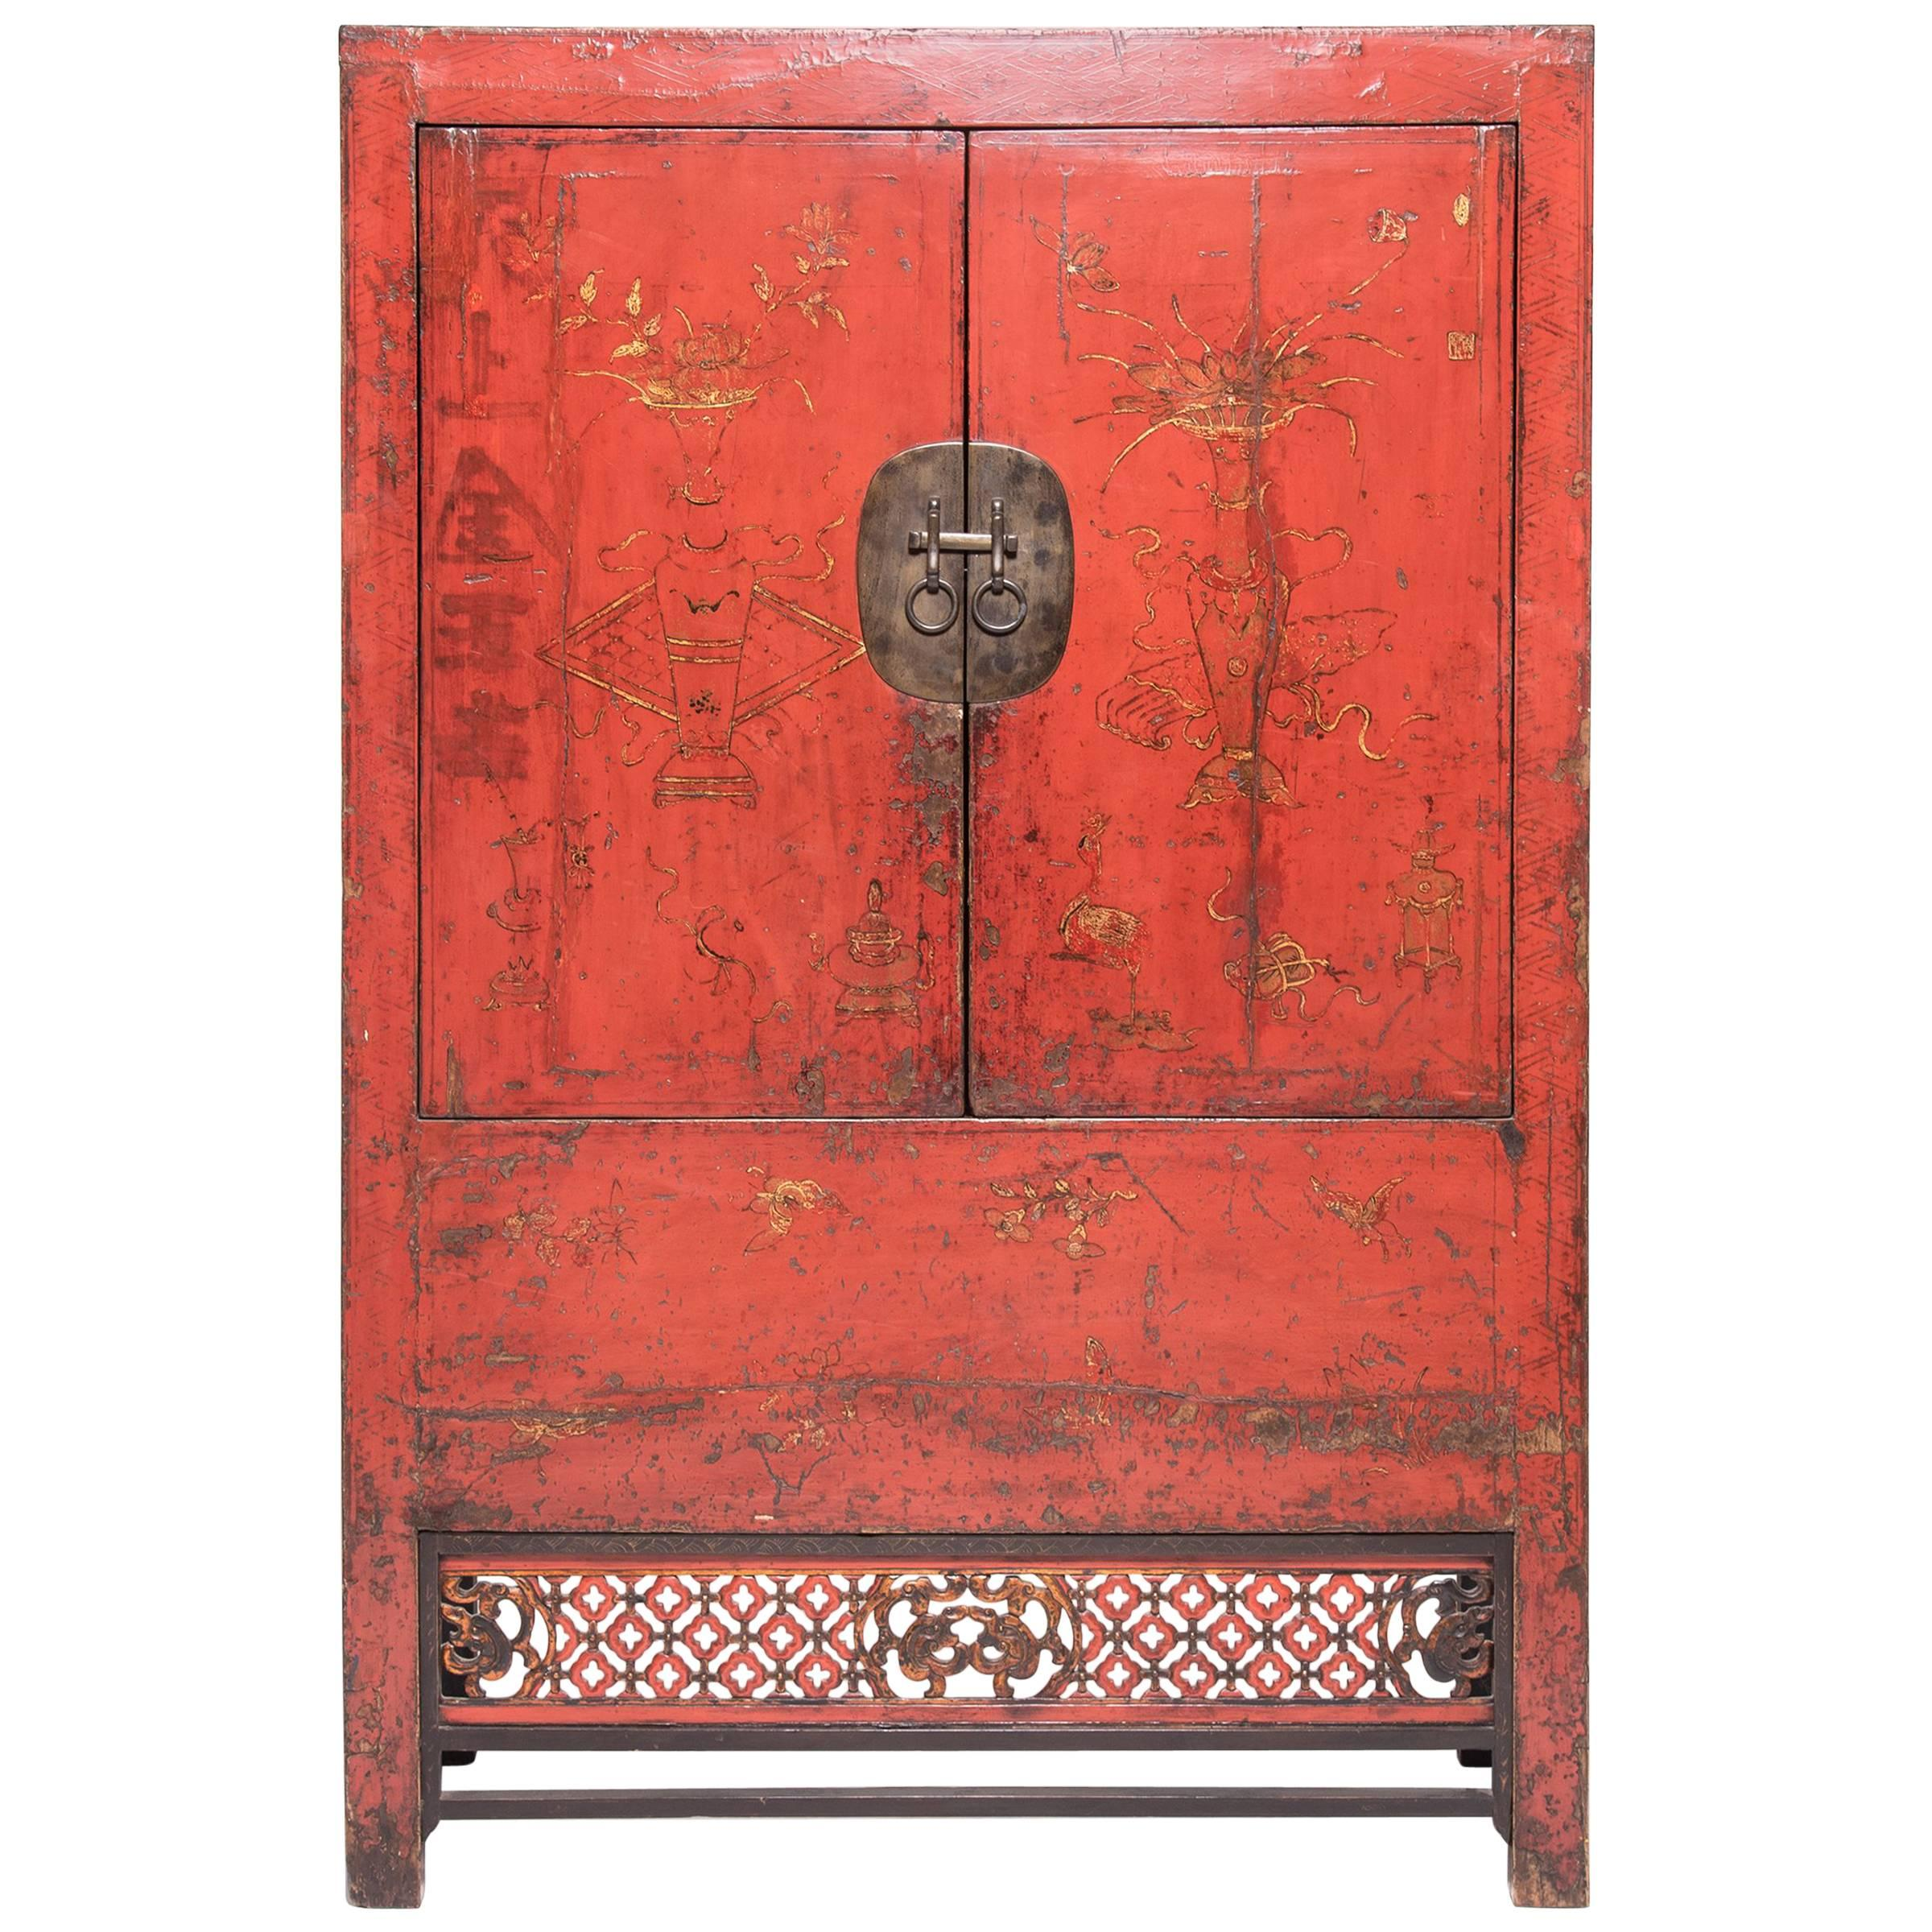 Chinese Gilt Red Lacquer Scholars' Cabinet, c. 1850